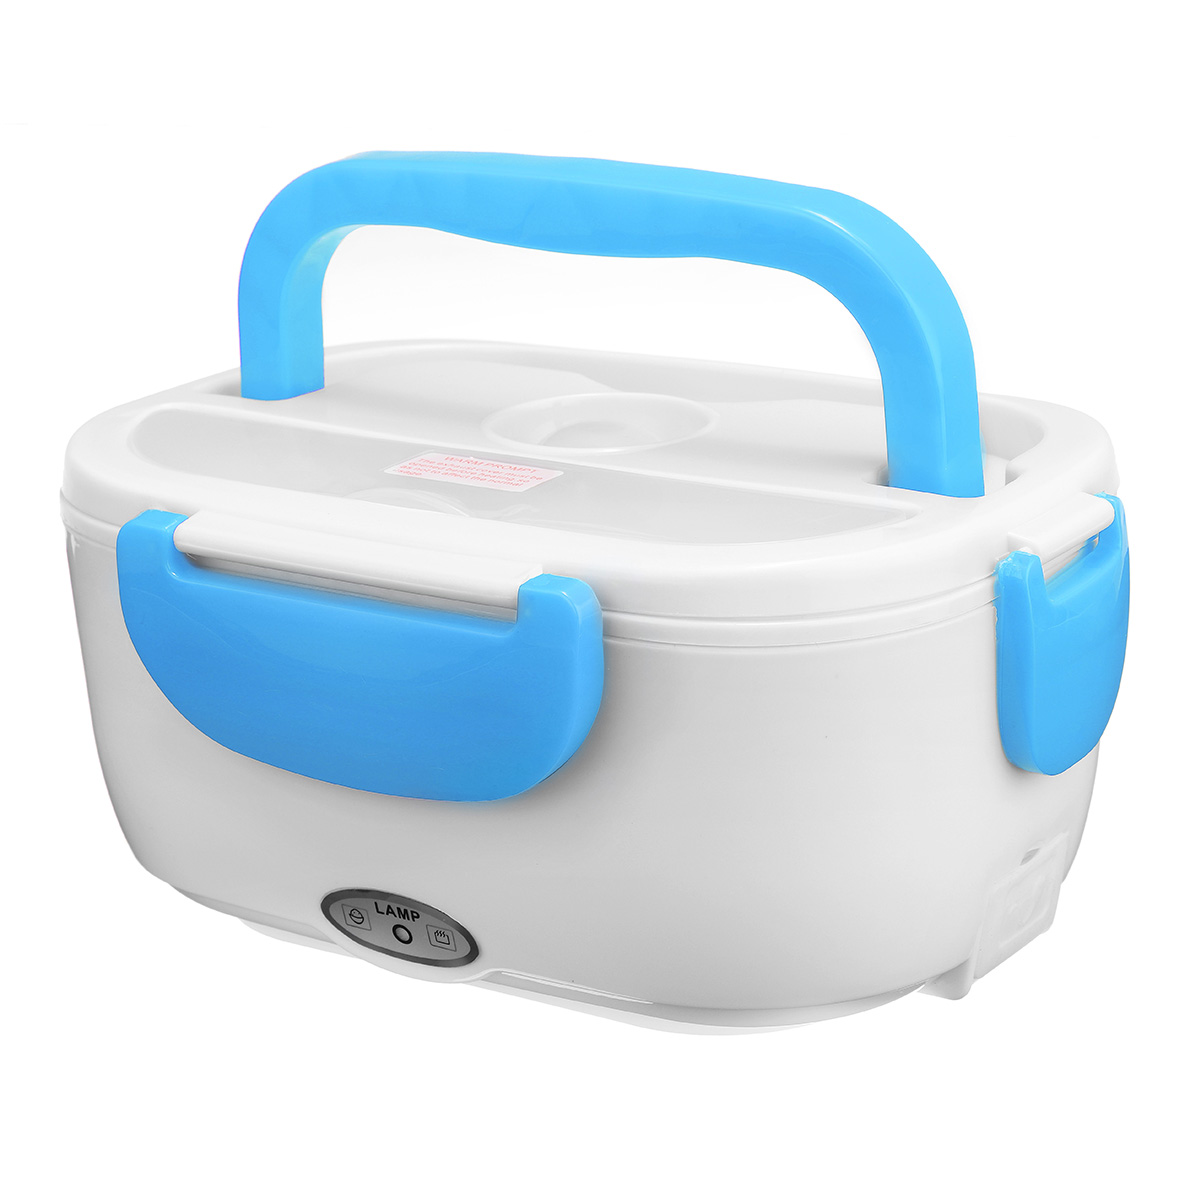 12/110/220V Portable Electric Heated Lunch <font><b>Box</b></font> Bento Boxes <font><b>Car</b></font> Home Office School Dinnerware Food Rice Container Warmer image